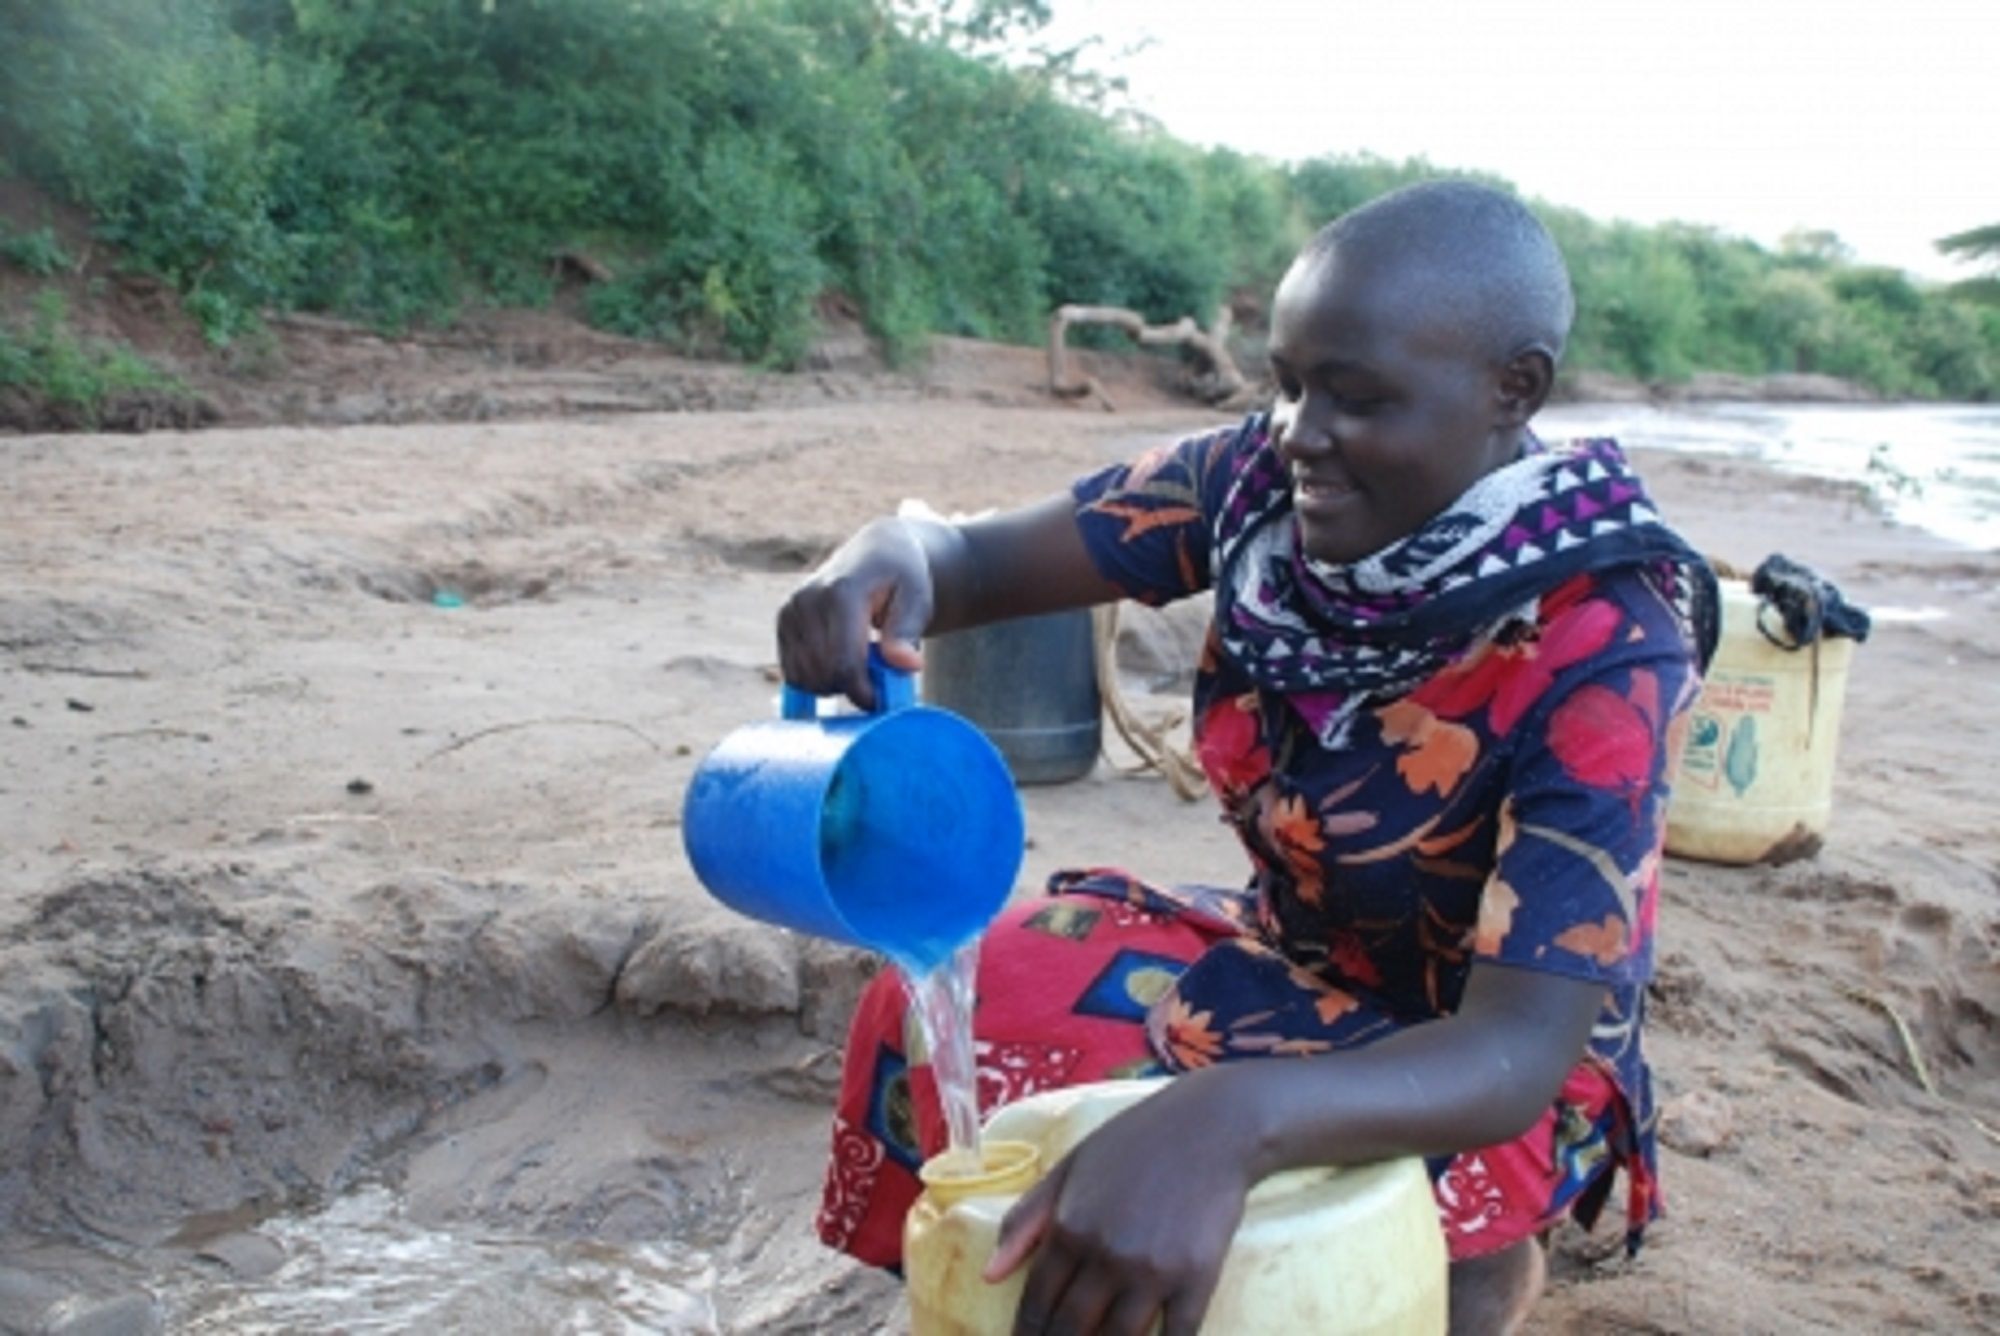 Mauren Saumo fetches water from Isiolo River. The river is transforming agriculture in the area. [Photo: Malachi Motano]